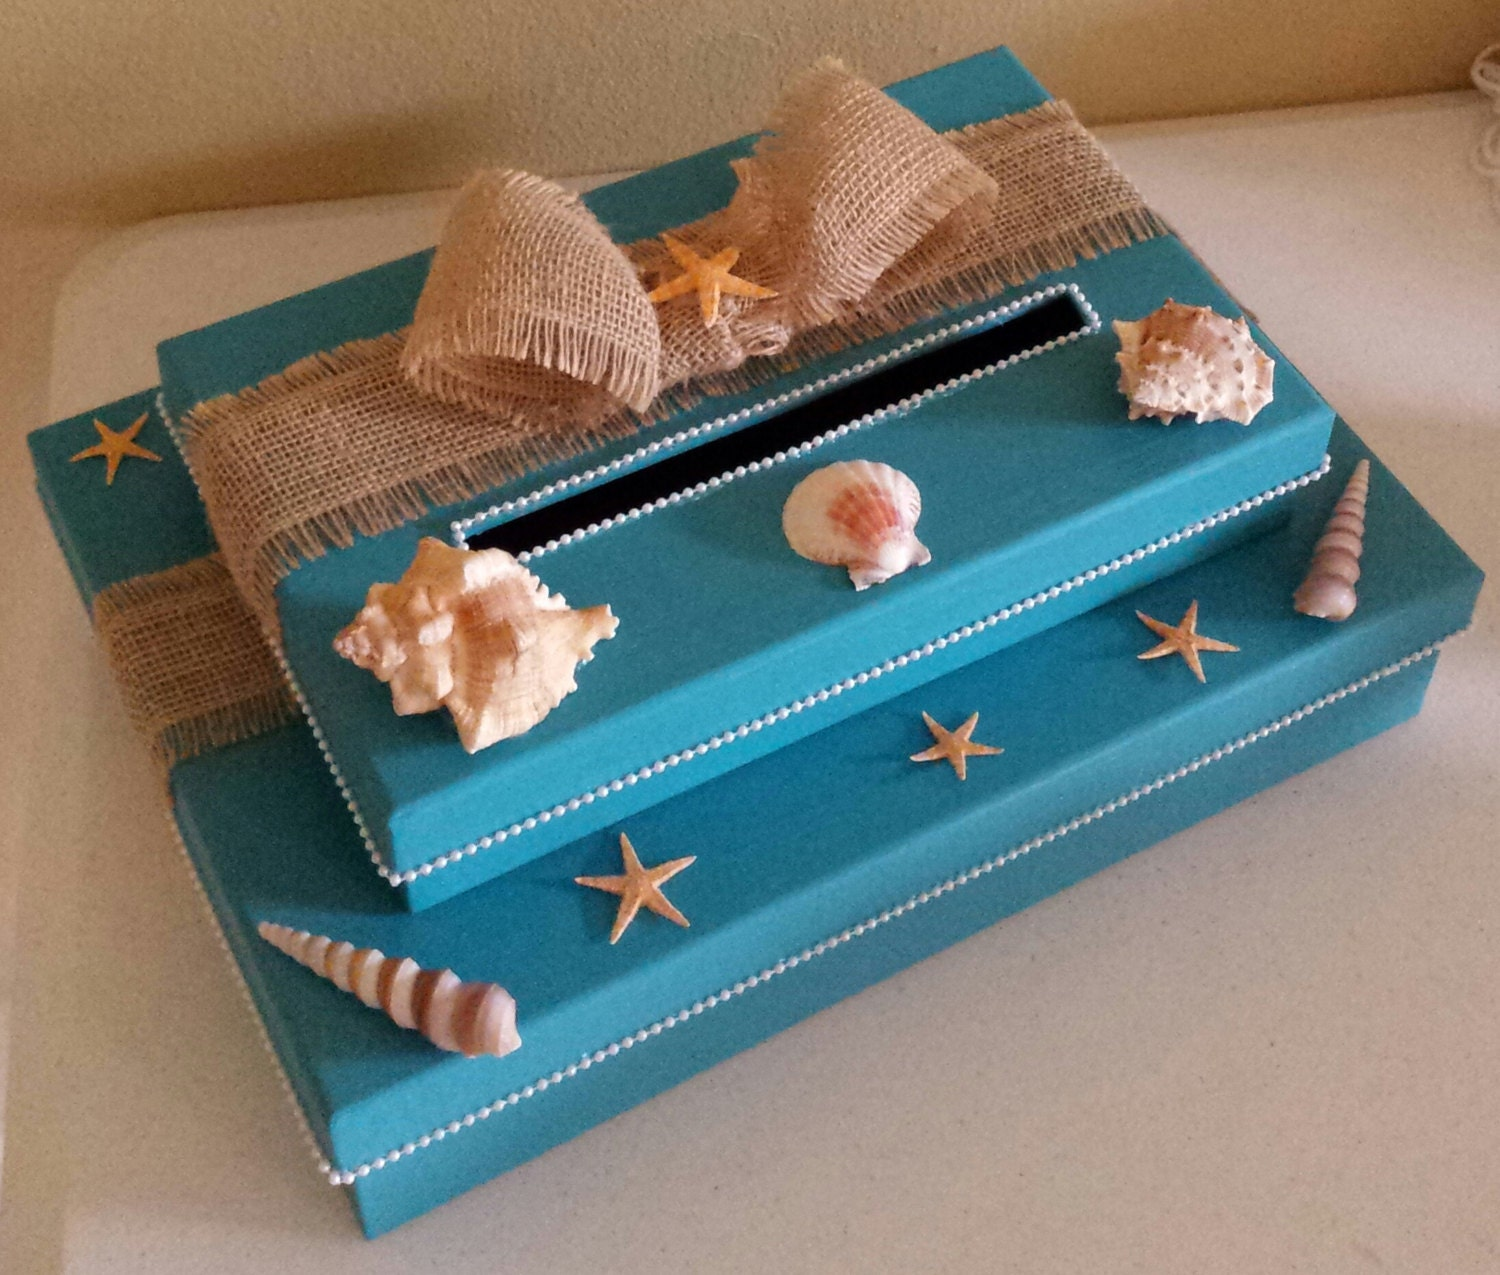 Beach Theme Home Decor Shadow Box Beach Gift: Beach Themed Two Tier Money Card Gift Box Perfect For A